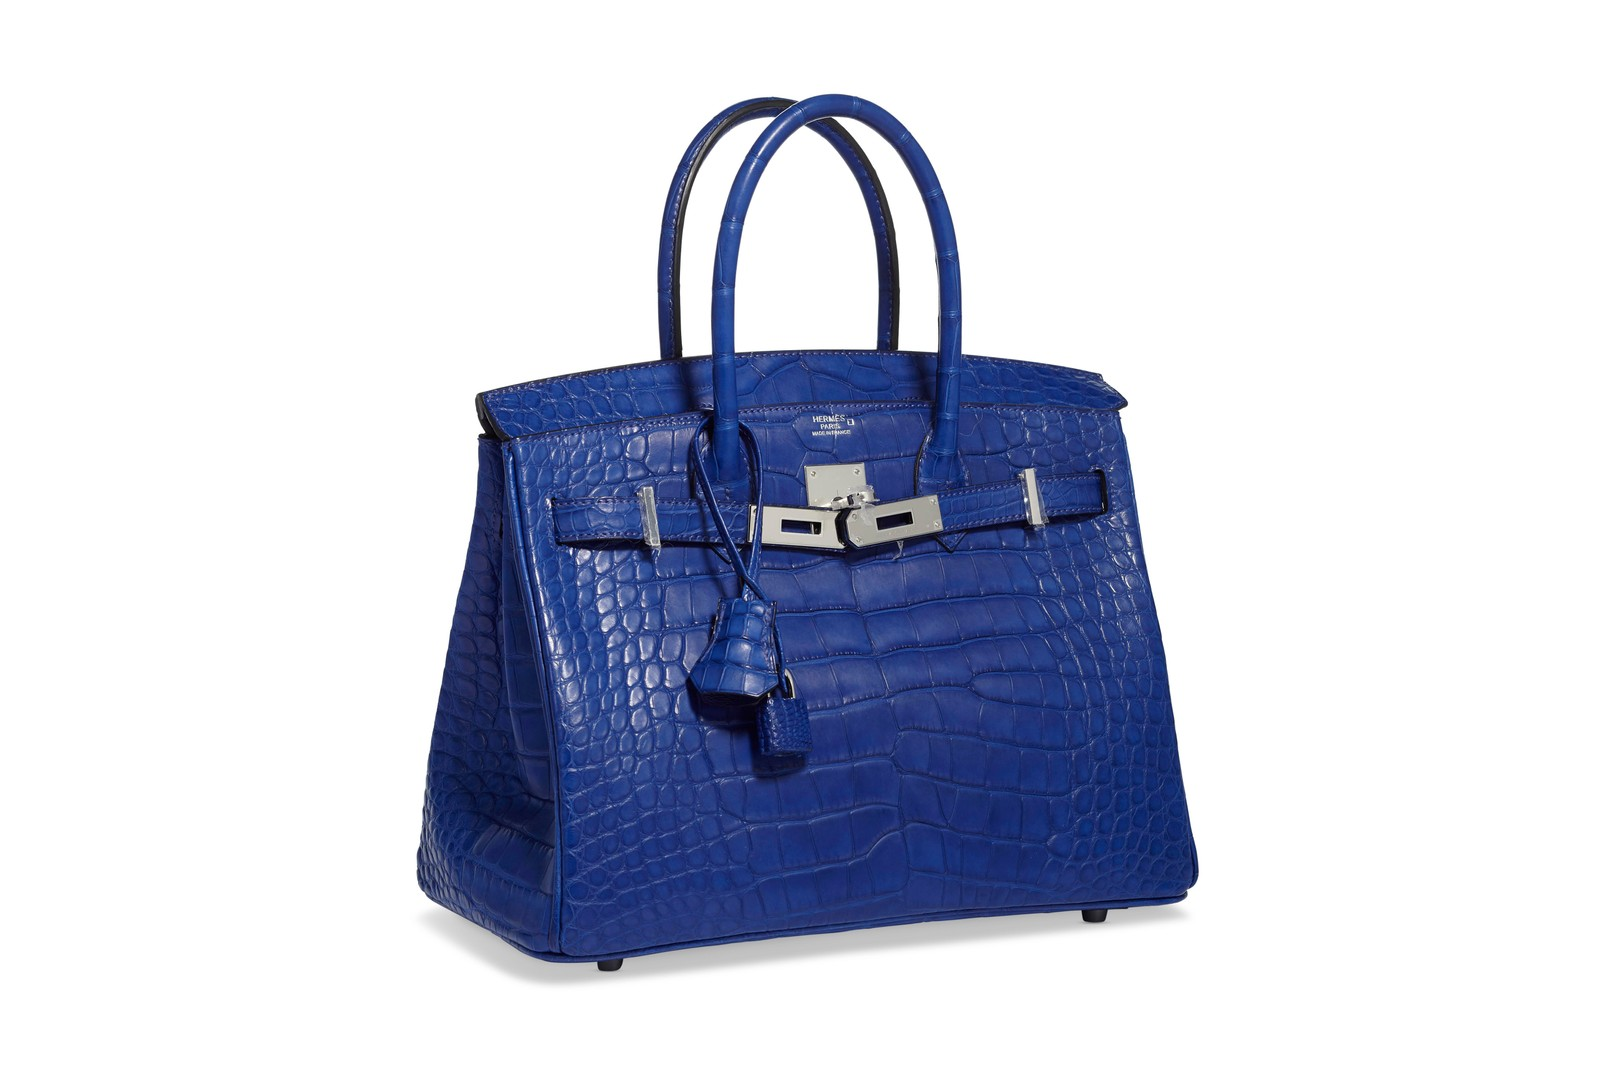 Here's How to Buy and Sell Luxury Designer Bags Christie's Auction House Hermes Birkin Louis Vuitton Fashion Fake or Real Expert Advise Authenticating